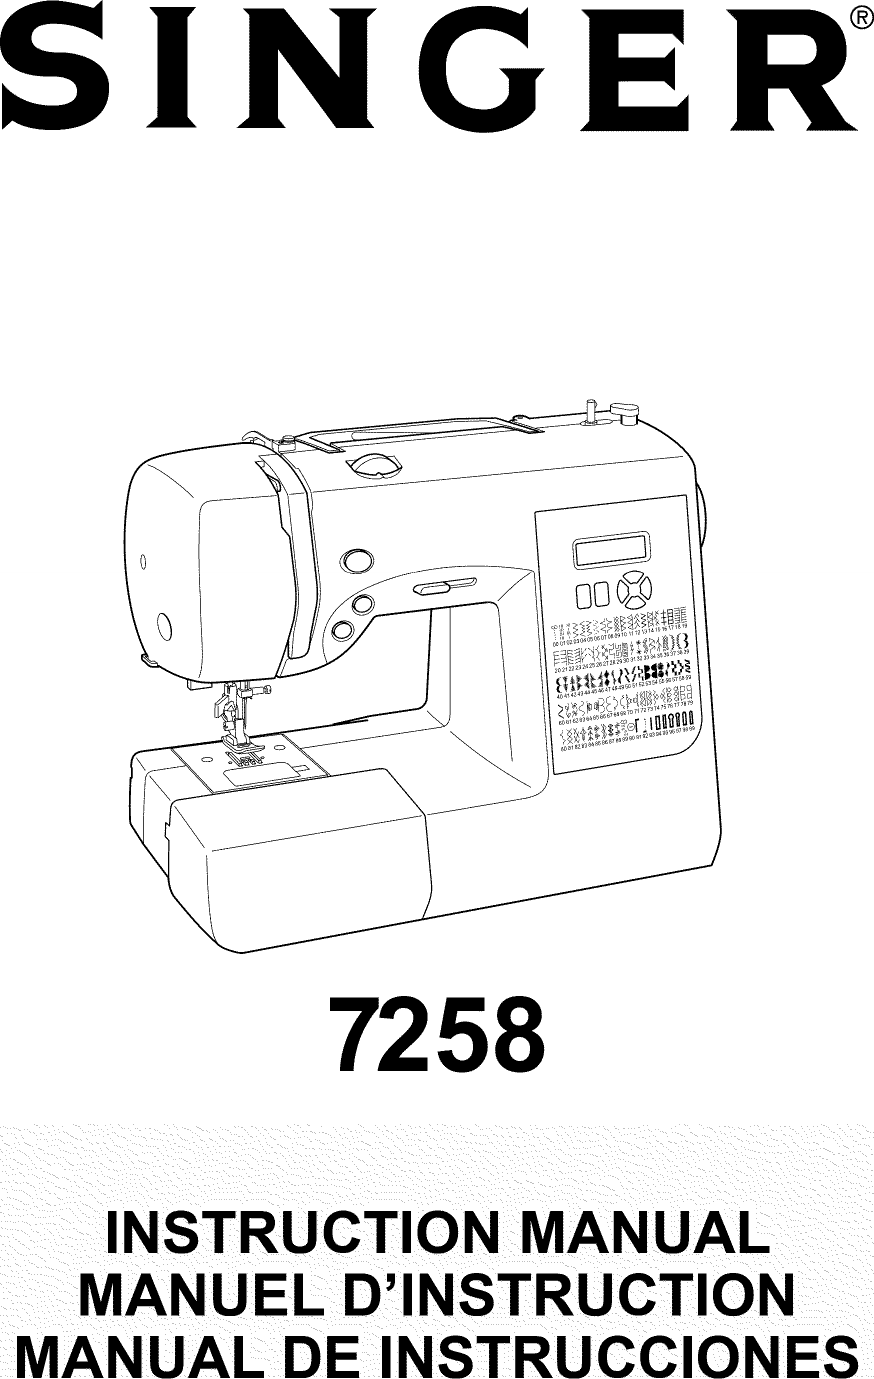 Singer 7258 User Manual SEWING MACHINE Manuals And Guides